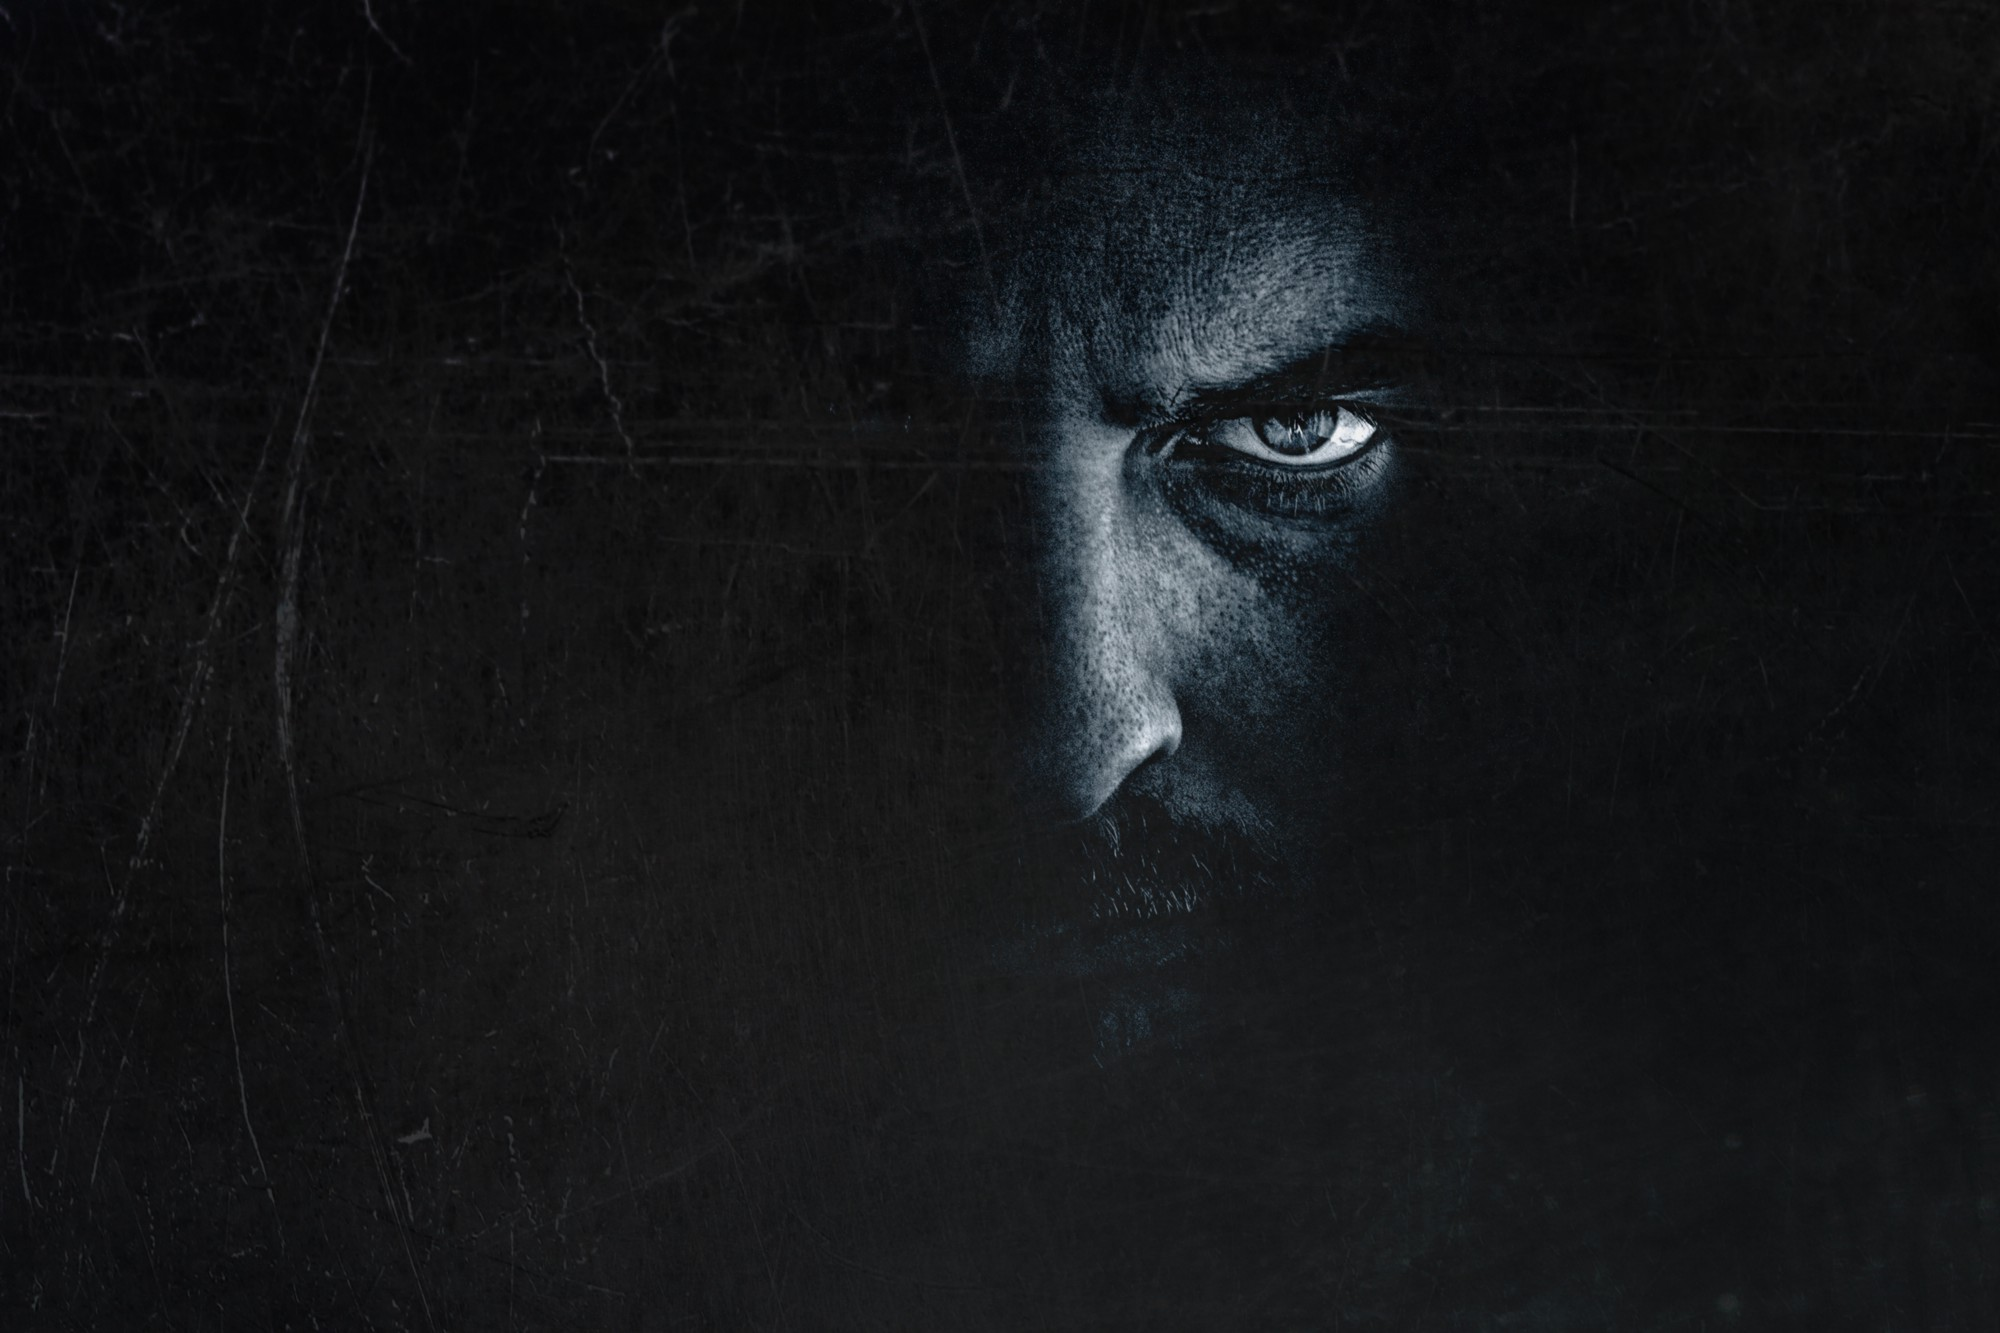 Dark portrait with half of a mans face showing in just a little light. He looks angry and menacing.